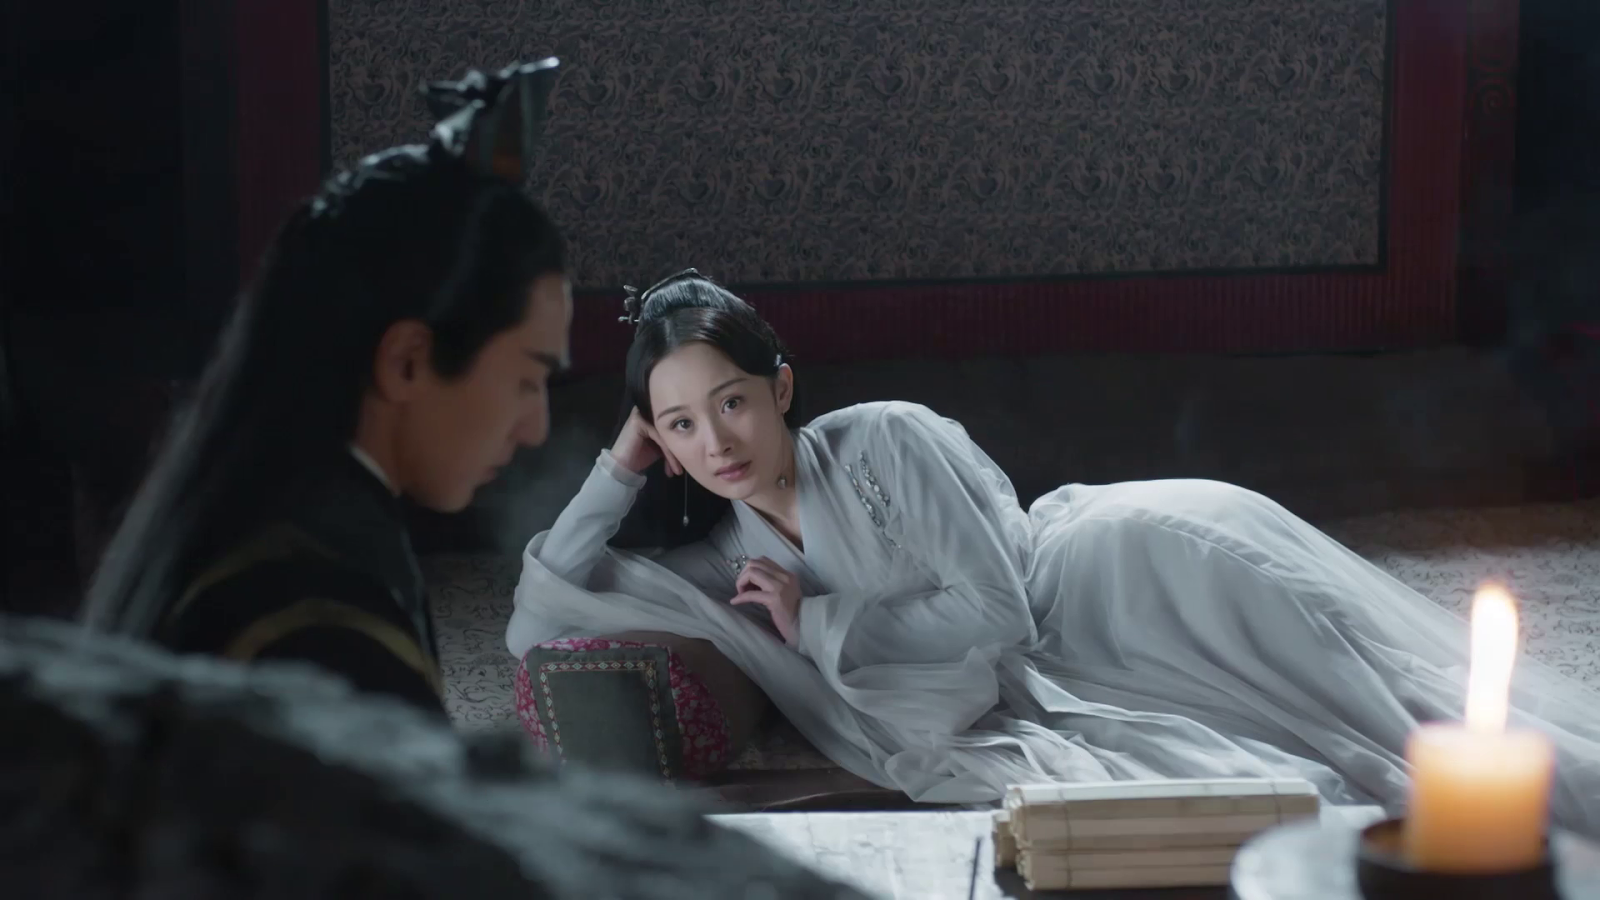 Ten Miles of Peach Blossoms 三生三世十里桃花 - Episode 32 (Recap)